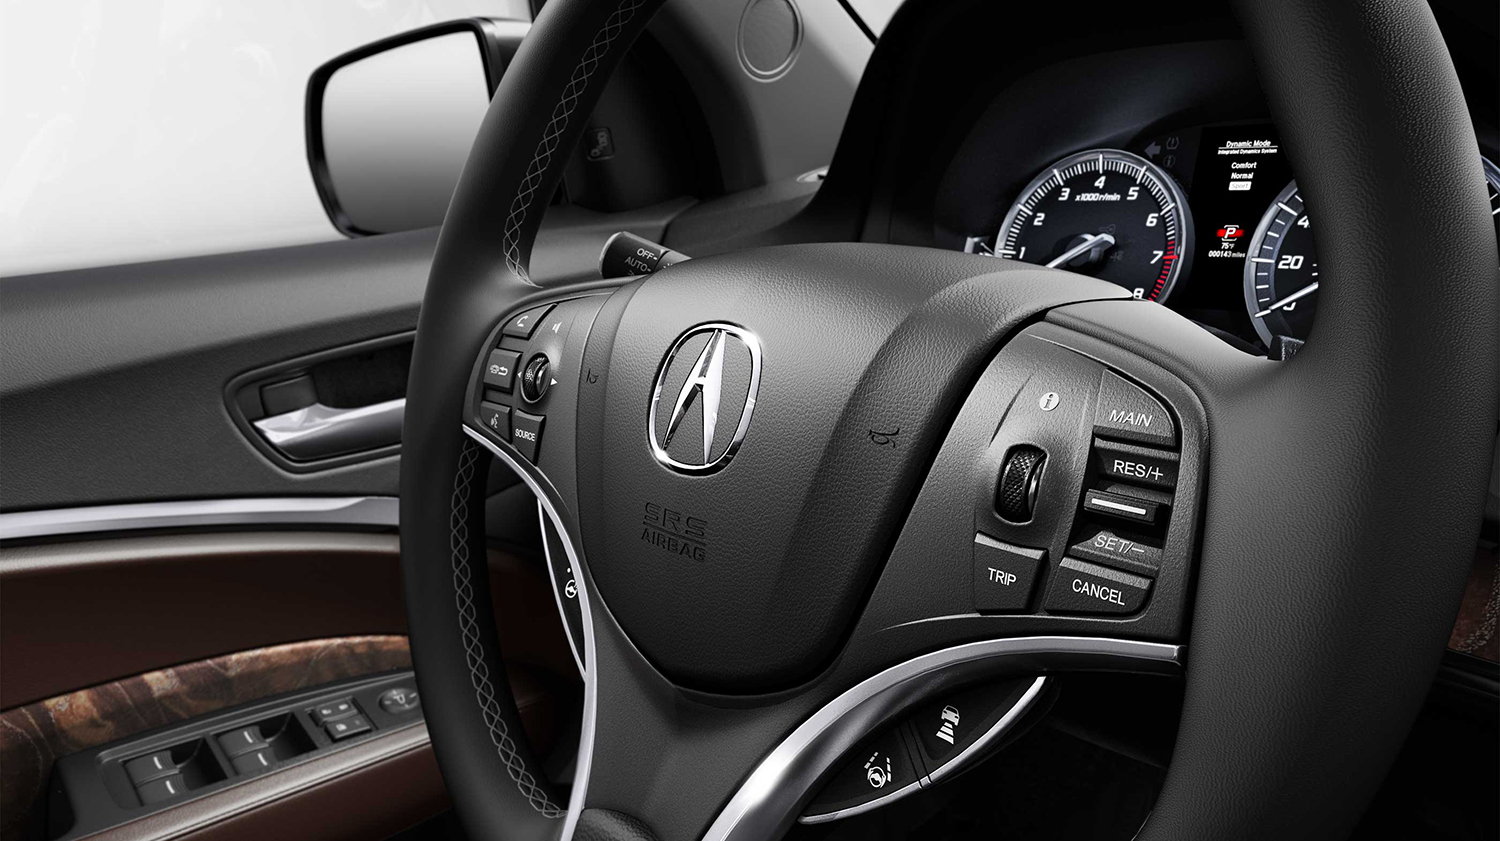 2017 Acura MDX Steering Wheel-Mounted Controls